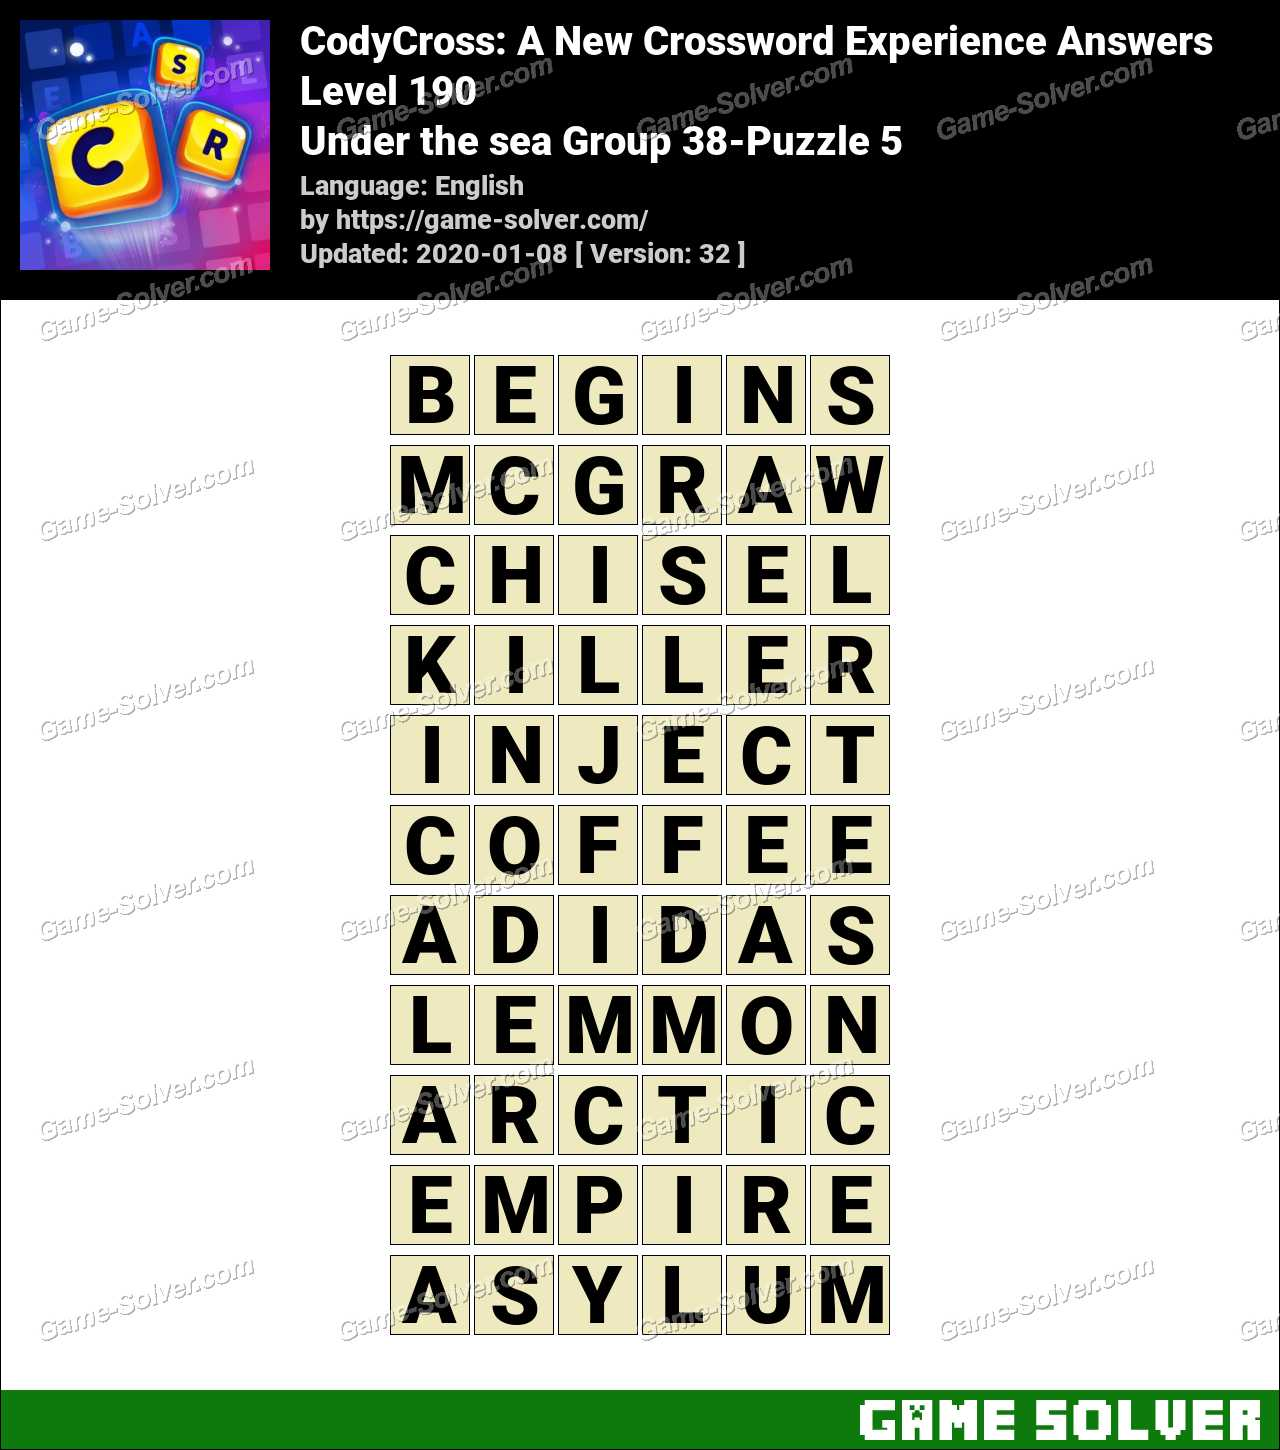 CodyCross Under the sea Group 38-Puzzle 5 Answers